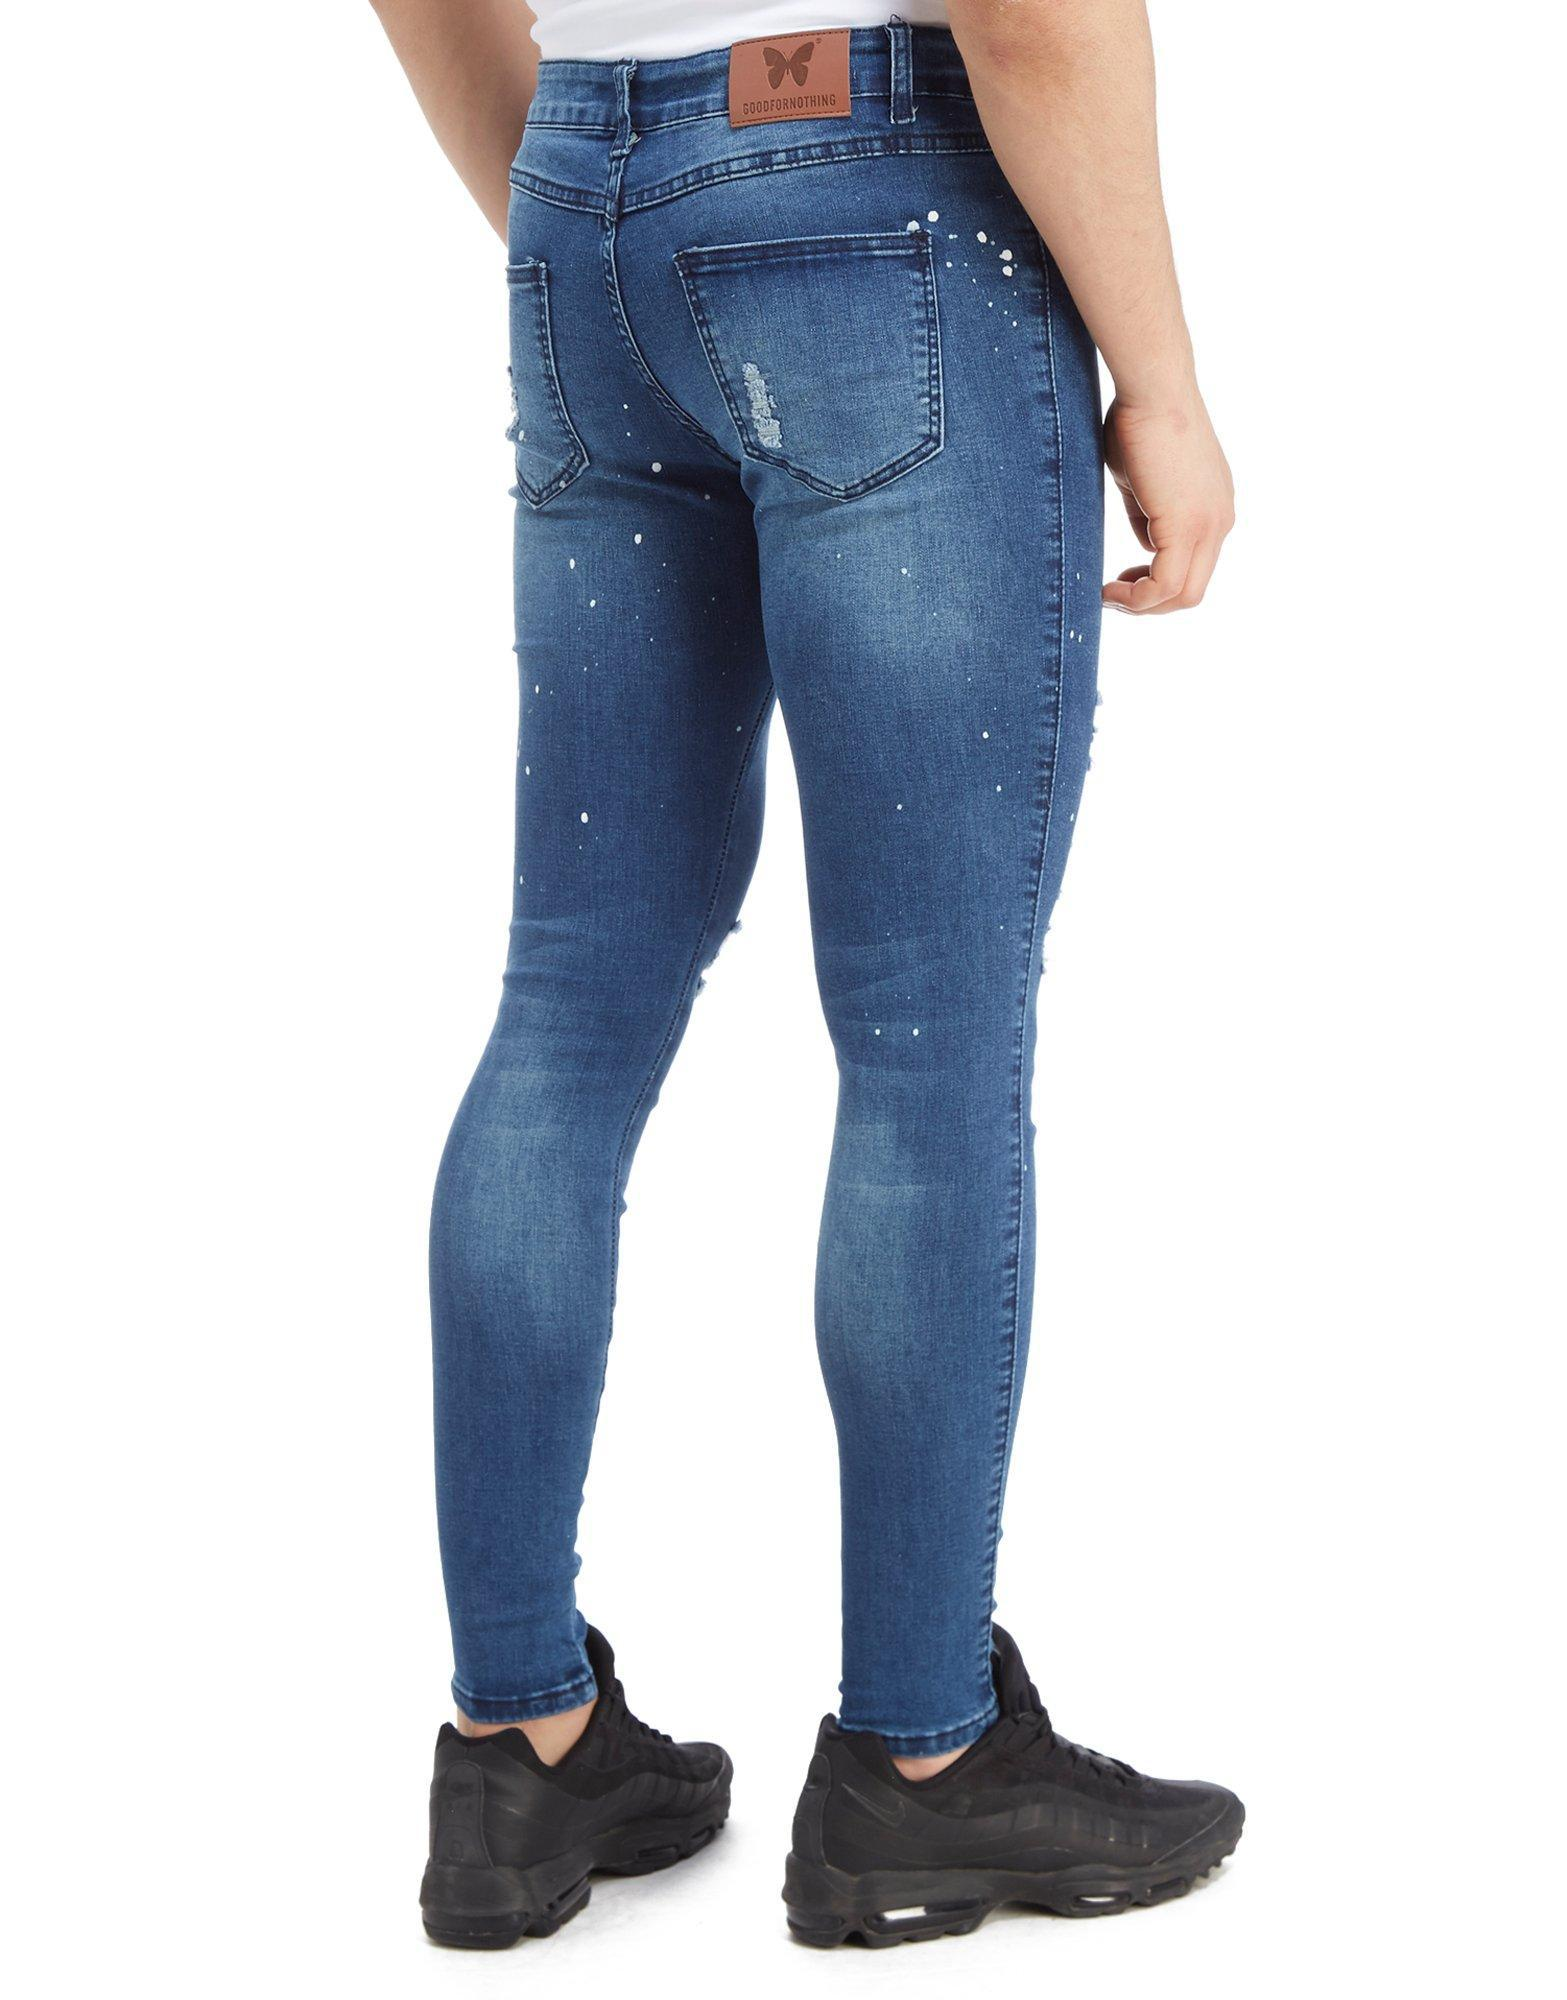 Lyst - Good For Nothing Mid-rise Denim Jeans in Blue for Men - Save  65.27777777777777% 6b8650daf3de